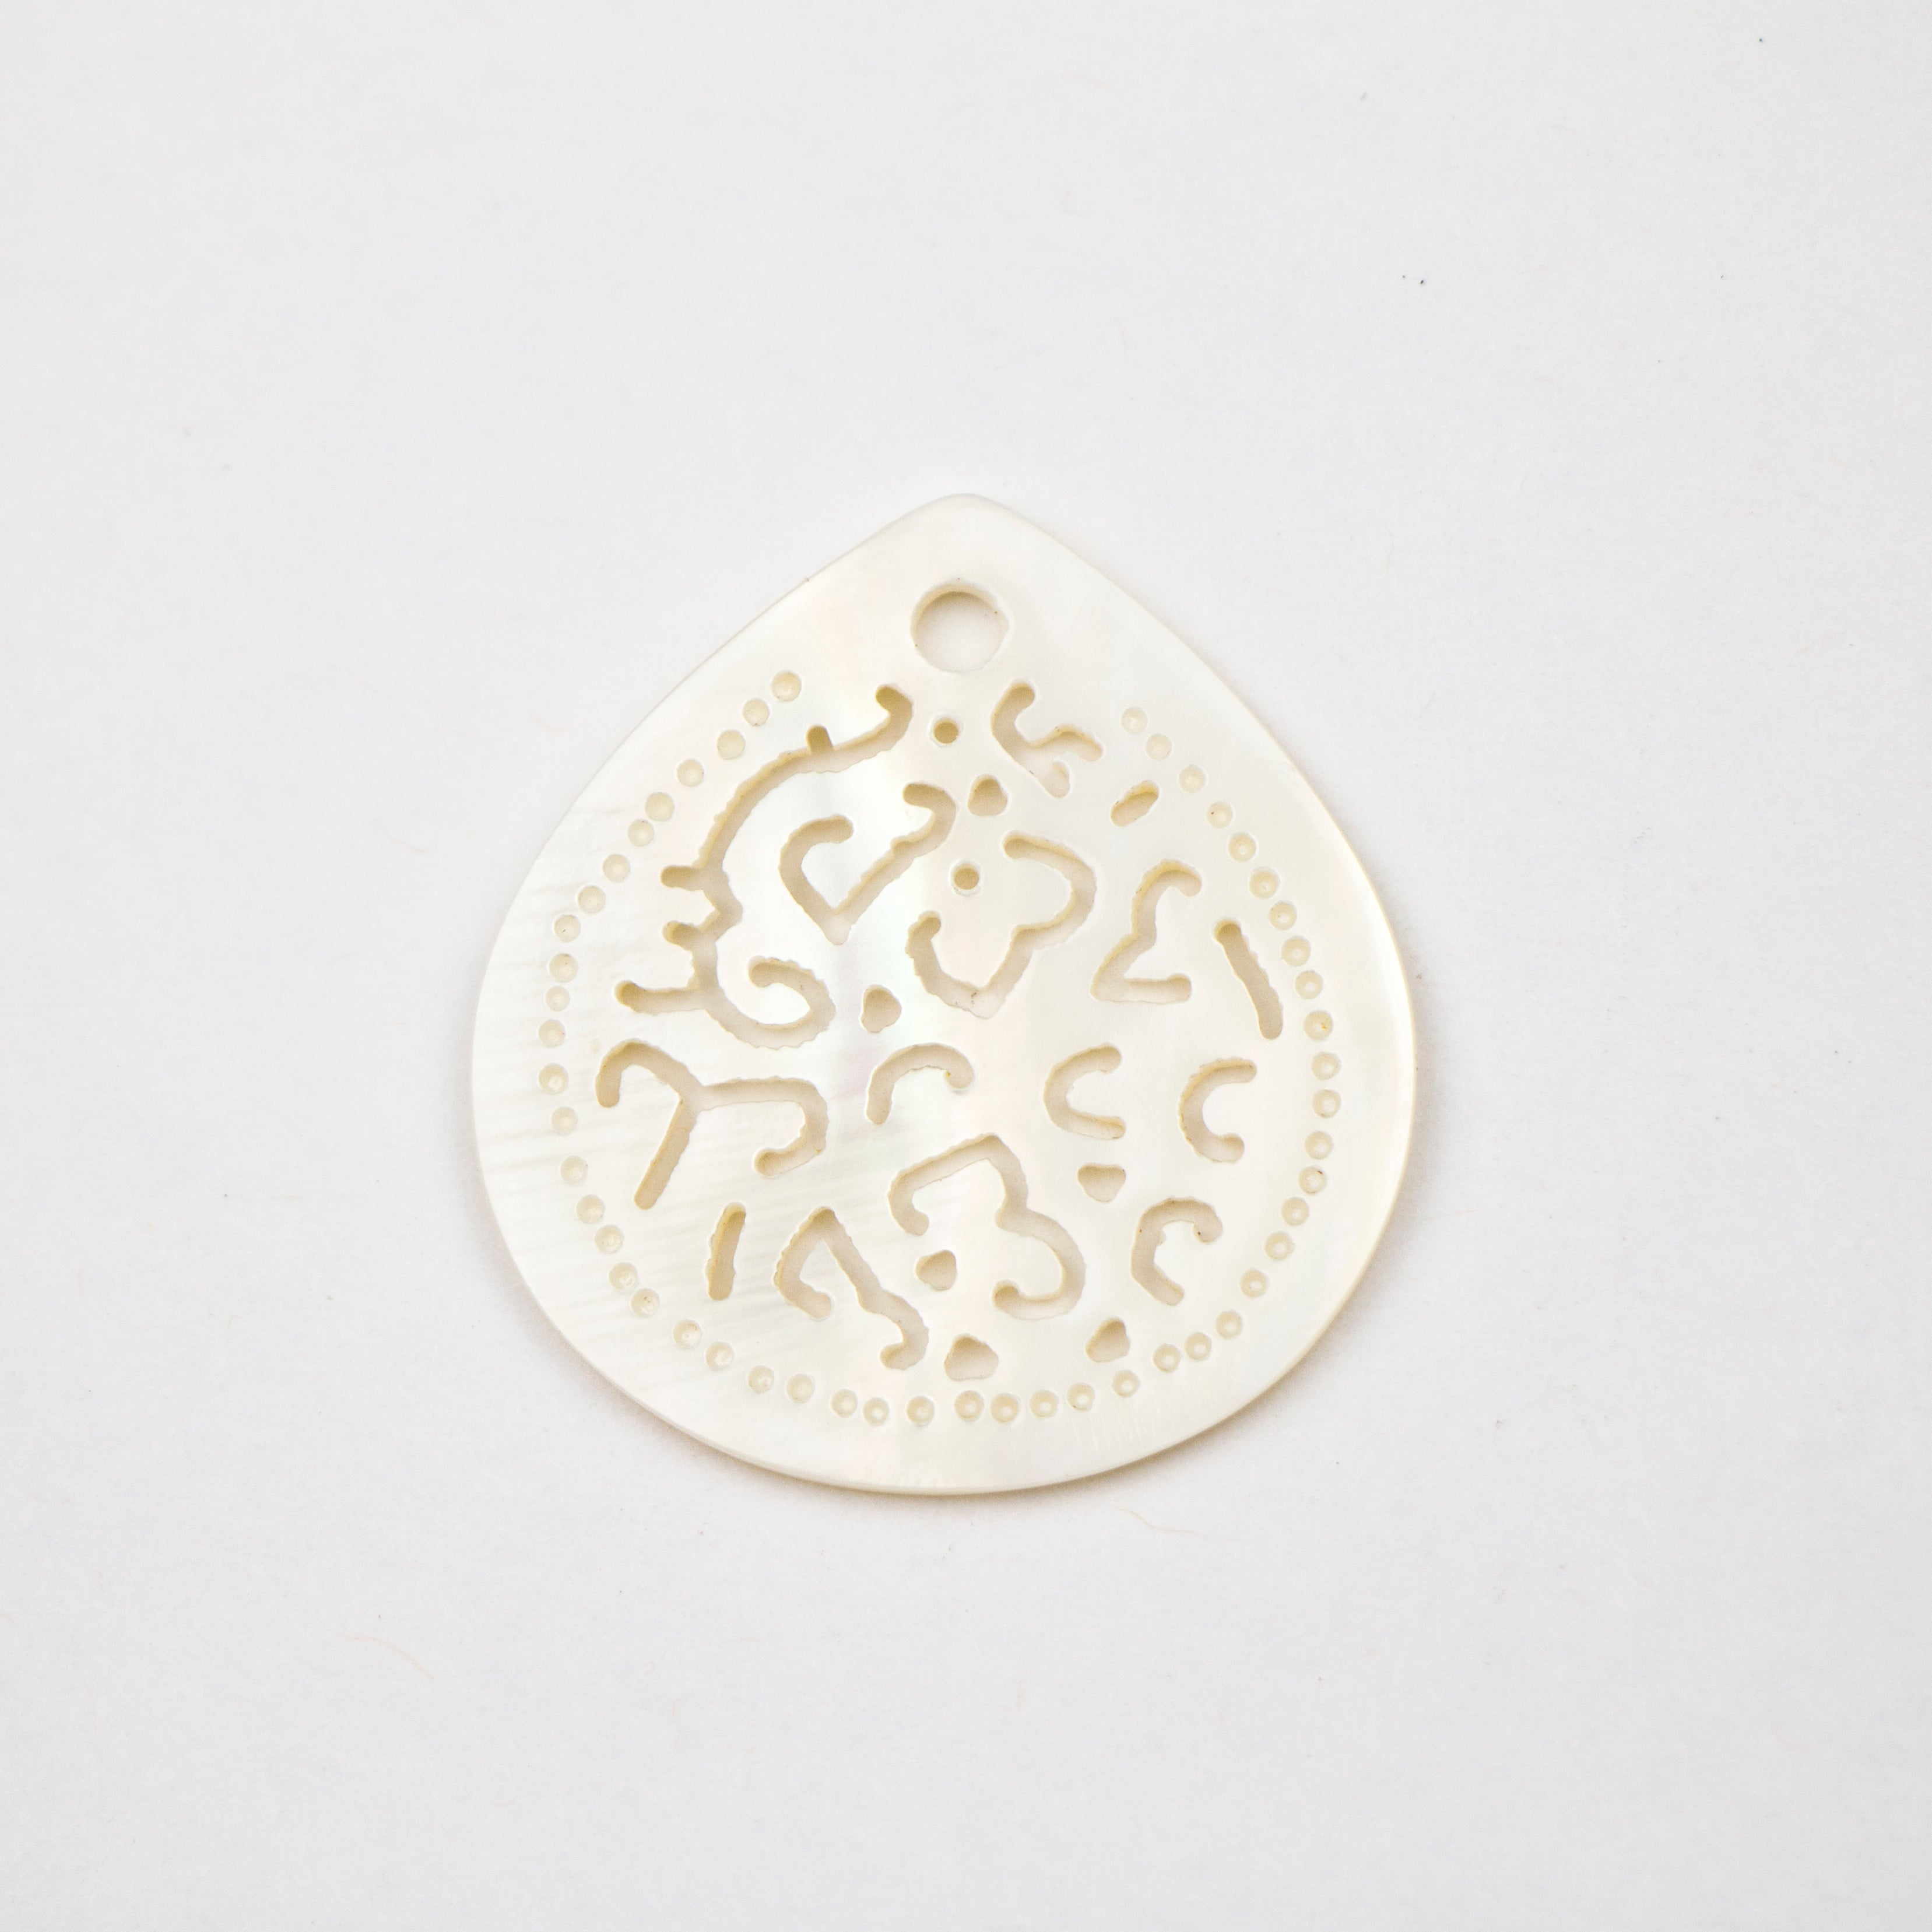 33.0mm x 33.0mm Makabibi Shell Carved Teardrop with 3mm Hole***